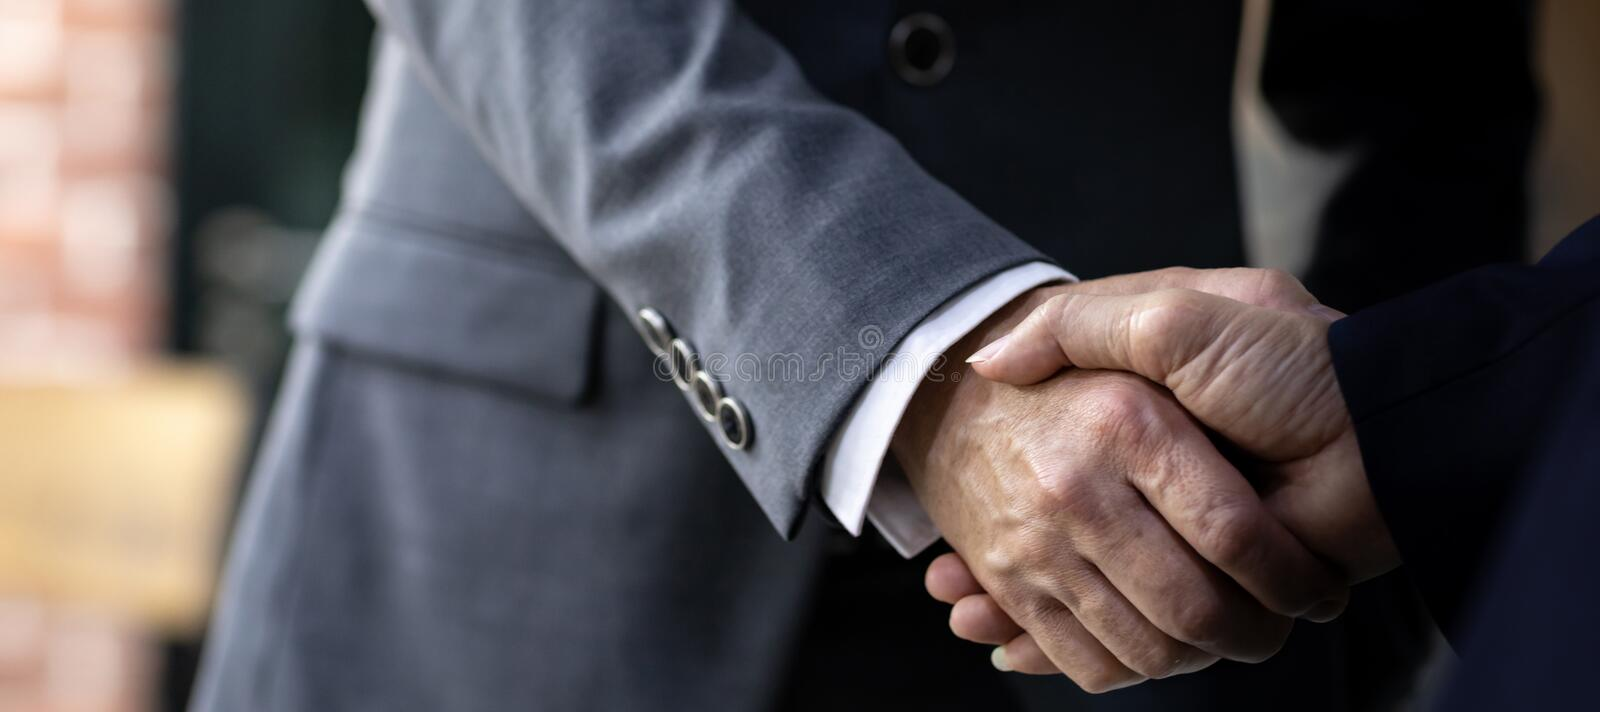 Business deal mergers and acquisitions royalty free stock image